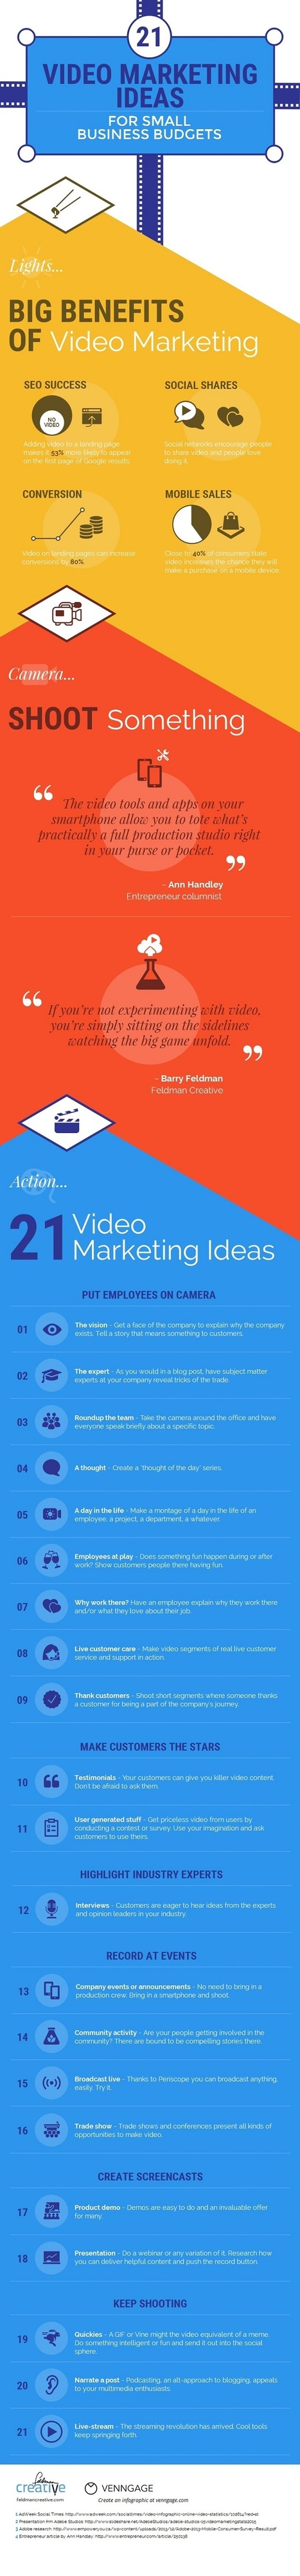 21 Video Marketing Ideas for Small-Business Budgets [Infographic] | Content Marketing & Content Strategy | Scoop.it